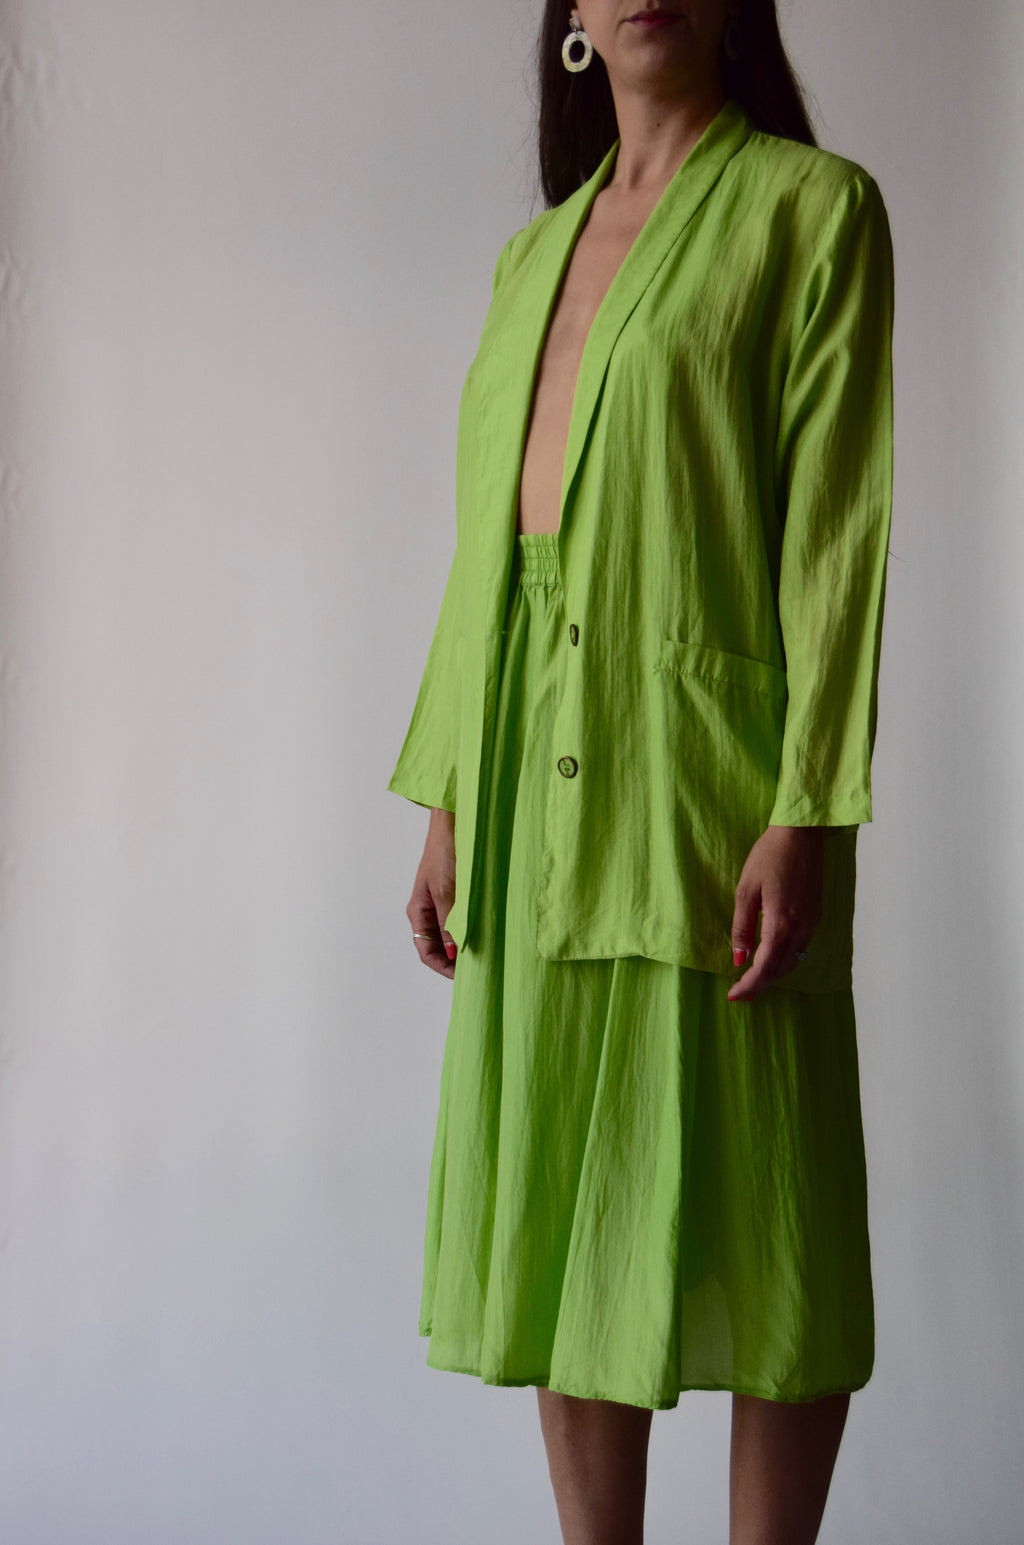 Vintage Silk Slime Green 2 Piece Skirt Suit